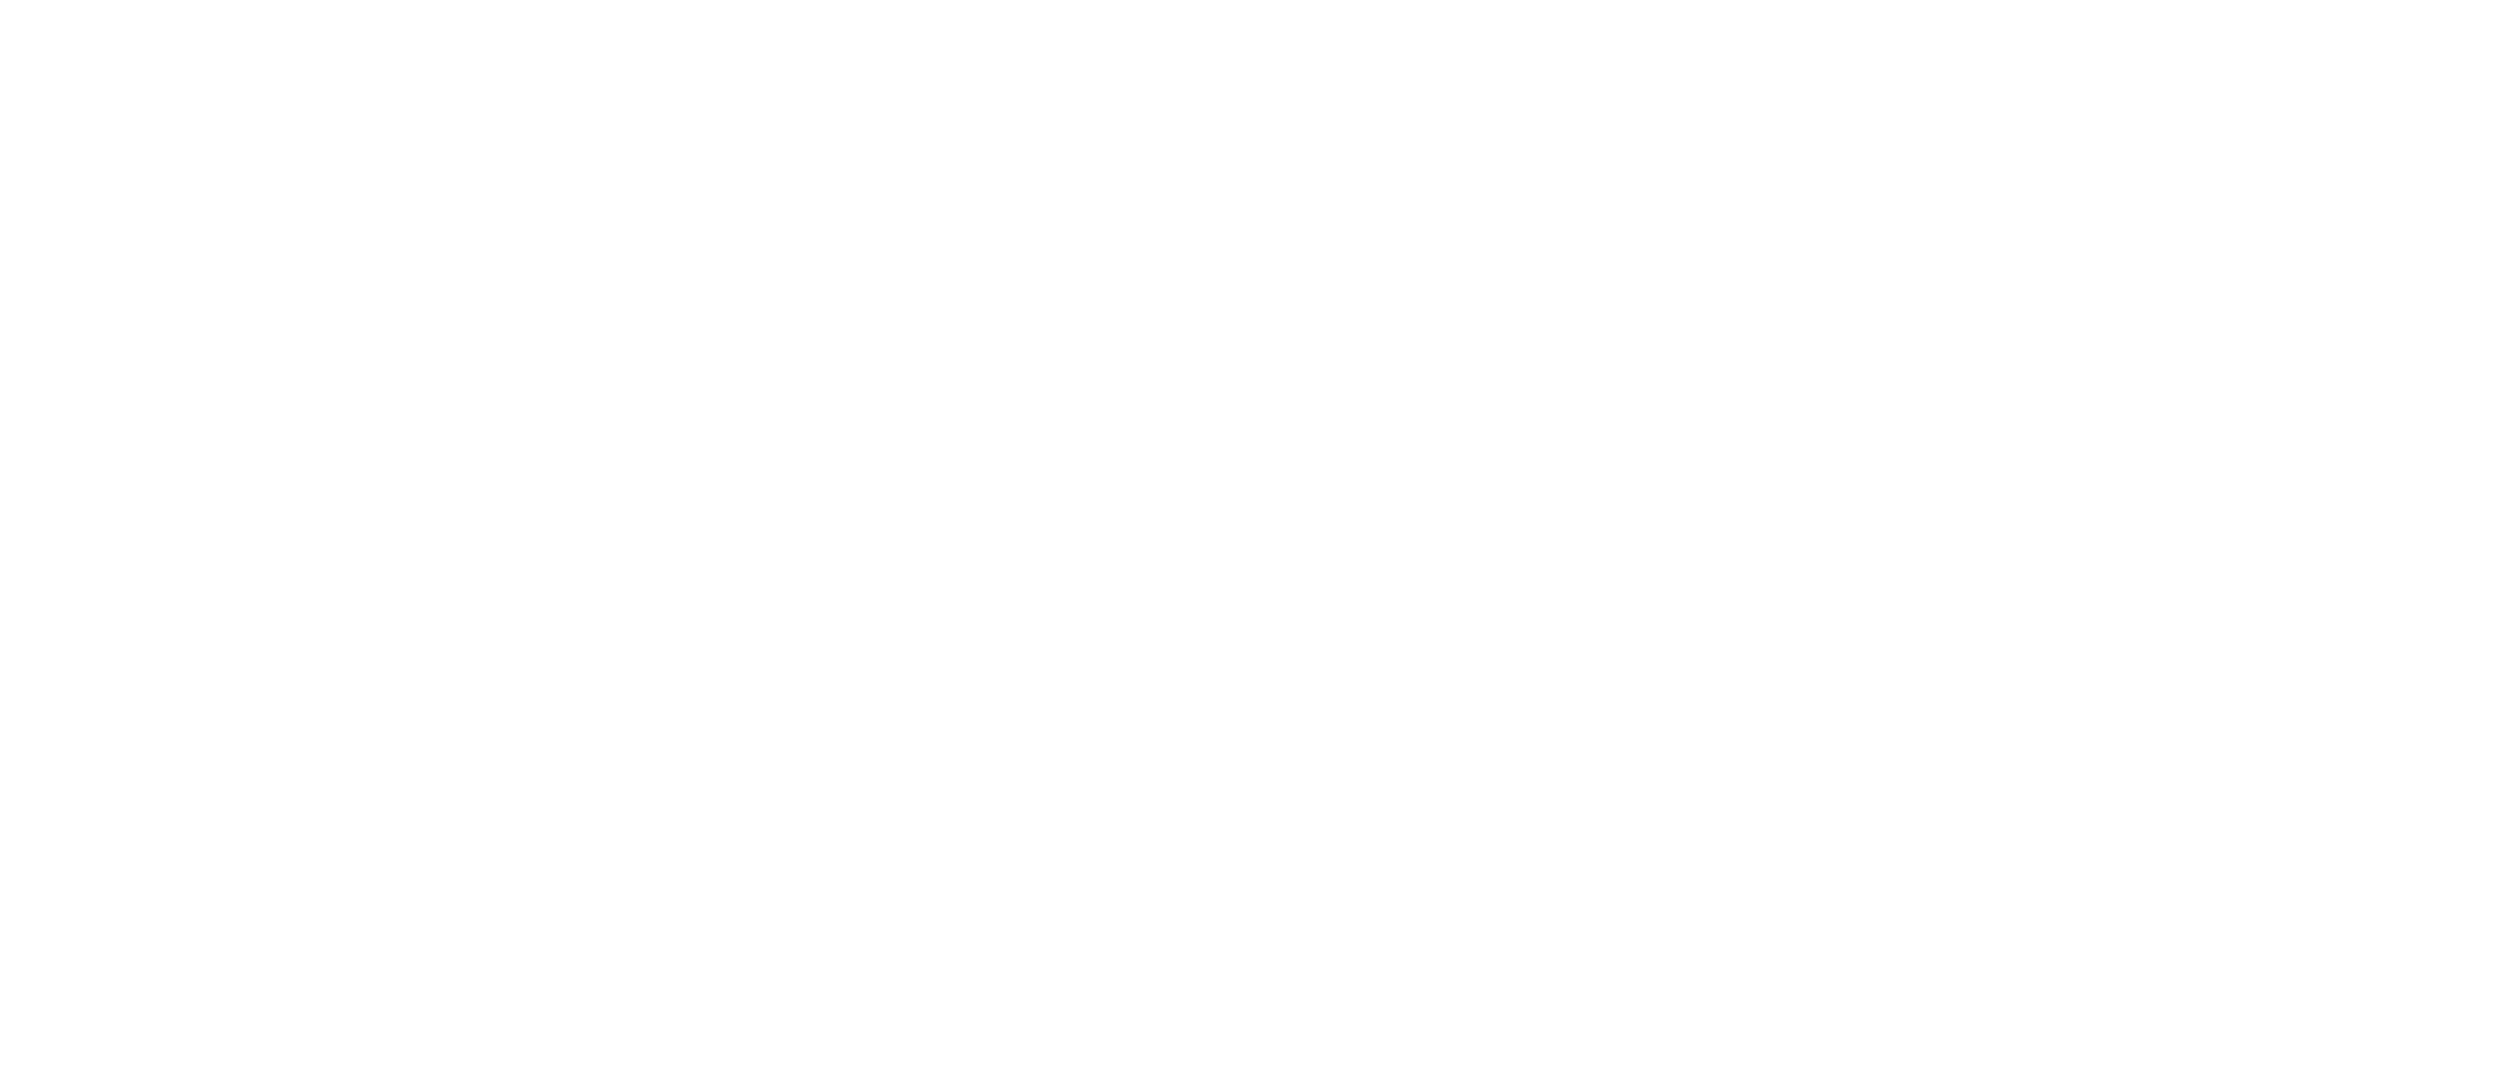 1ftp_NonprofitPartner_Horizontal_White.png